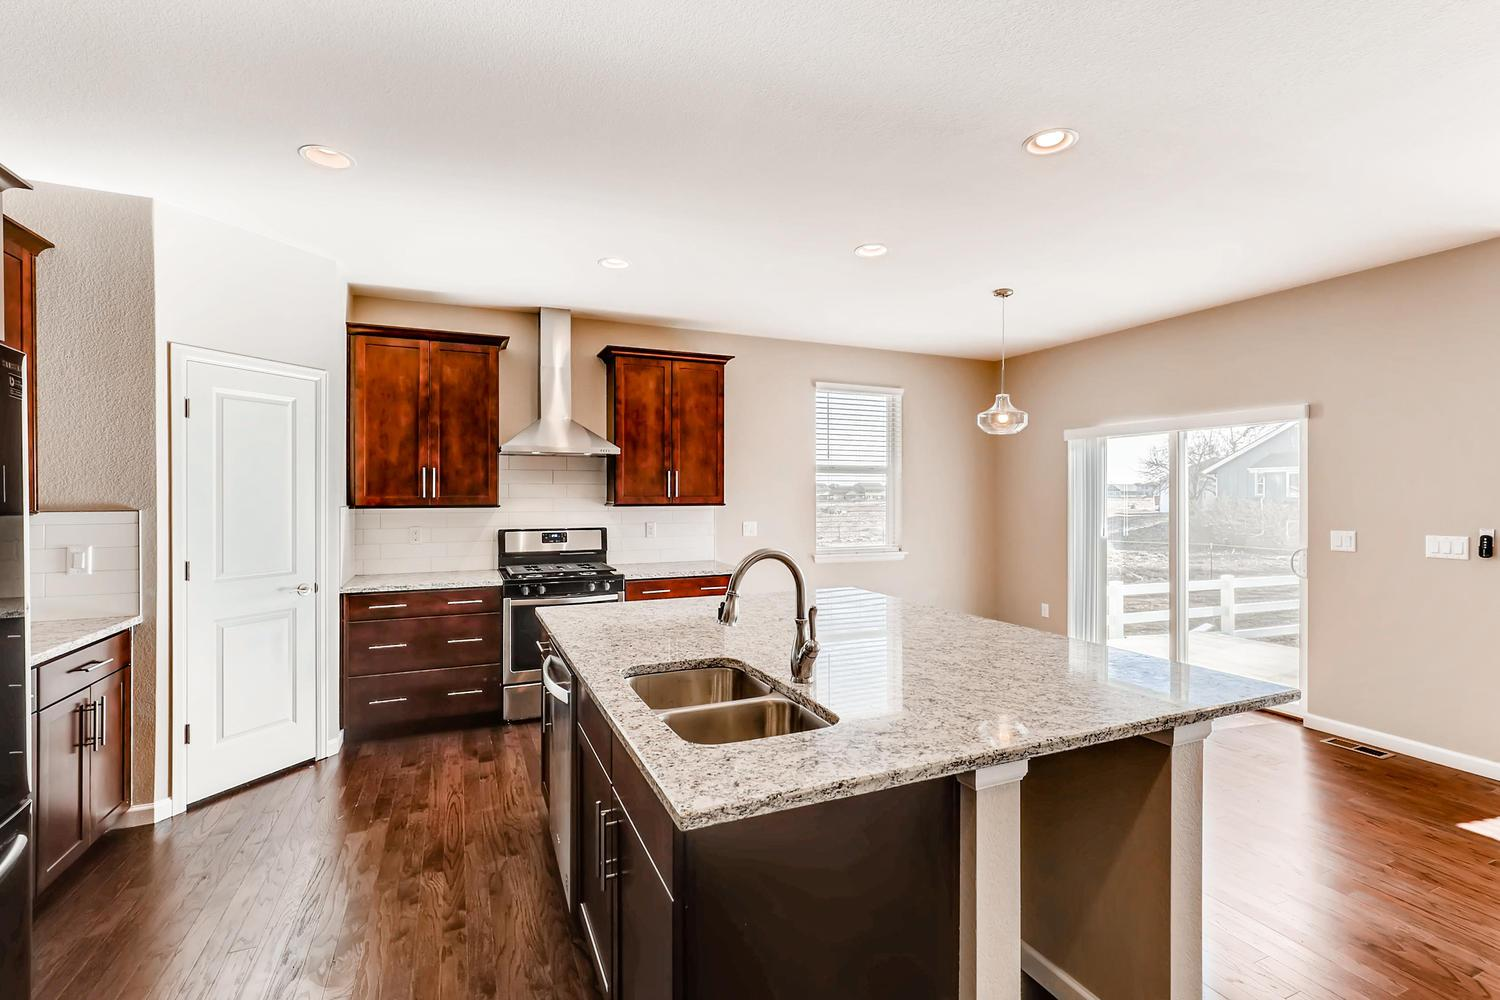 Kitchen featured in the Antero By Dream Finders Homes in Denver, CO